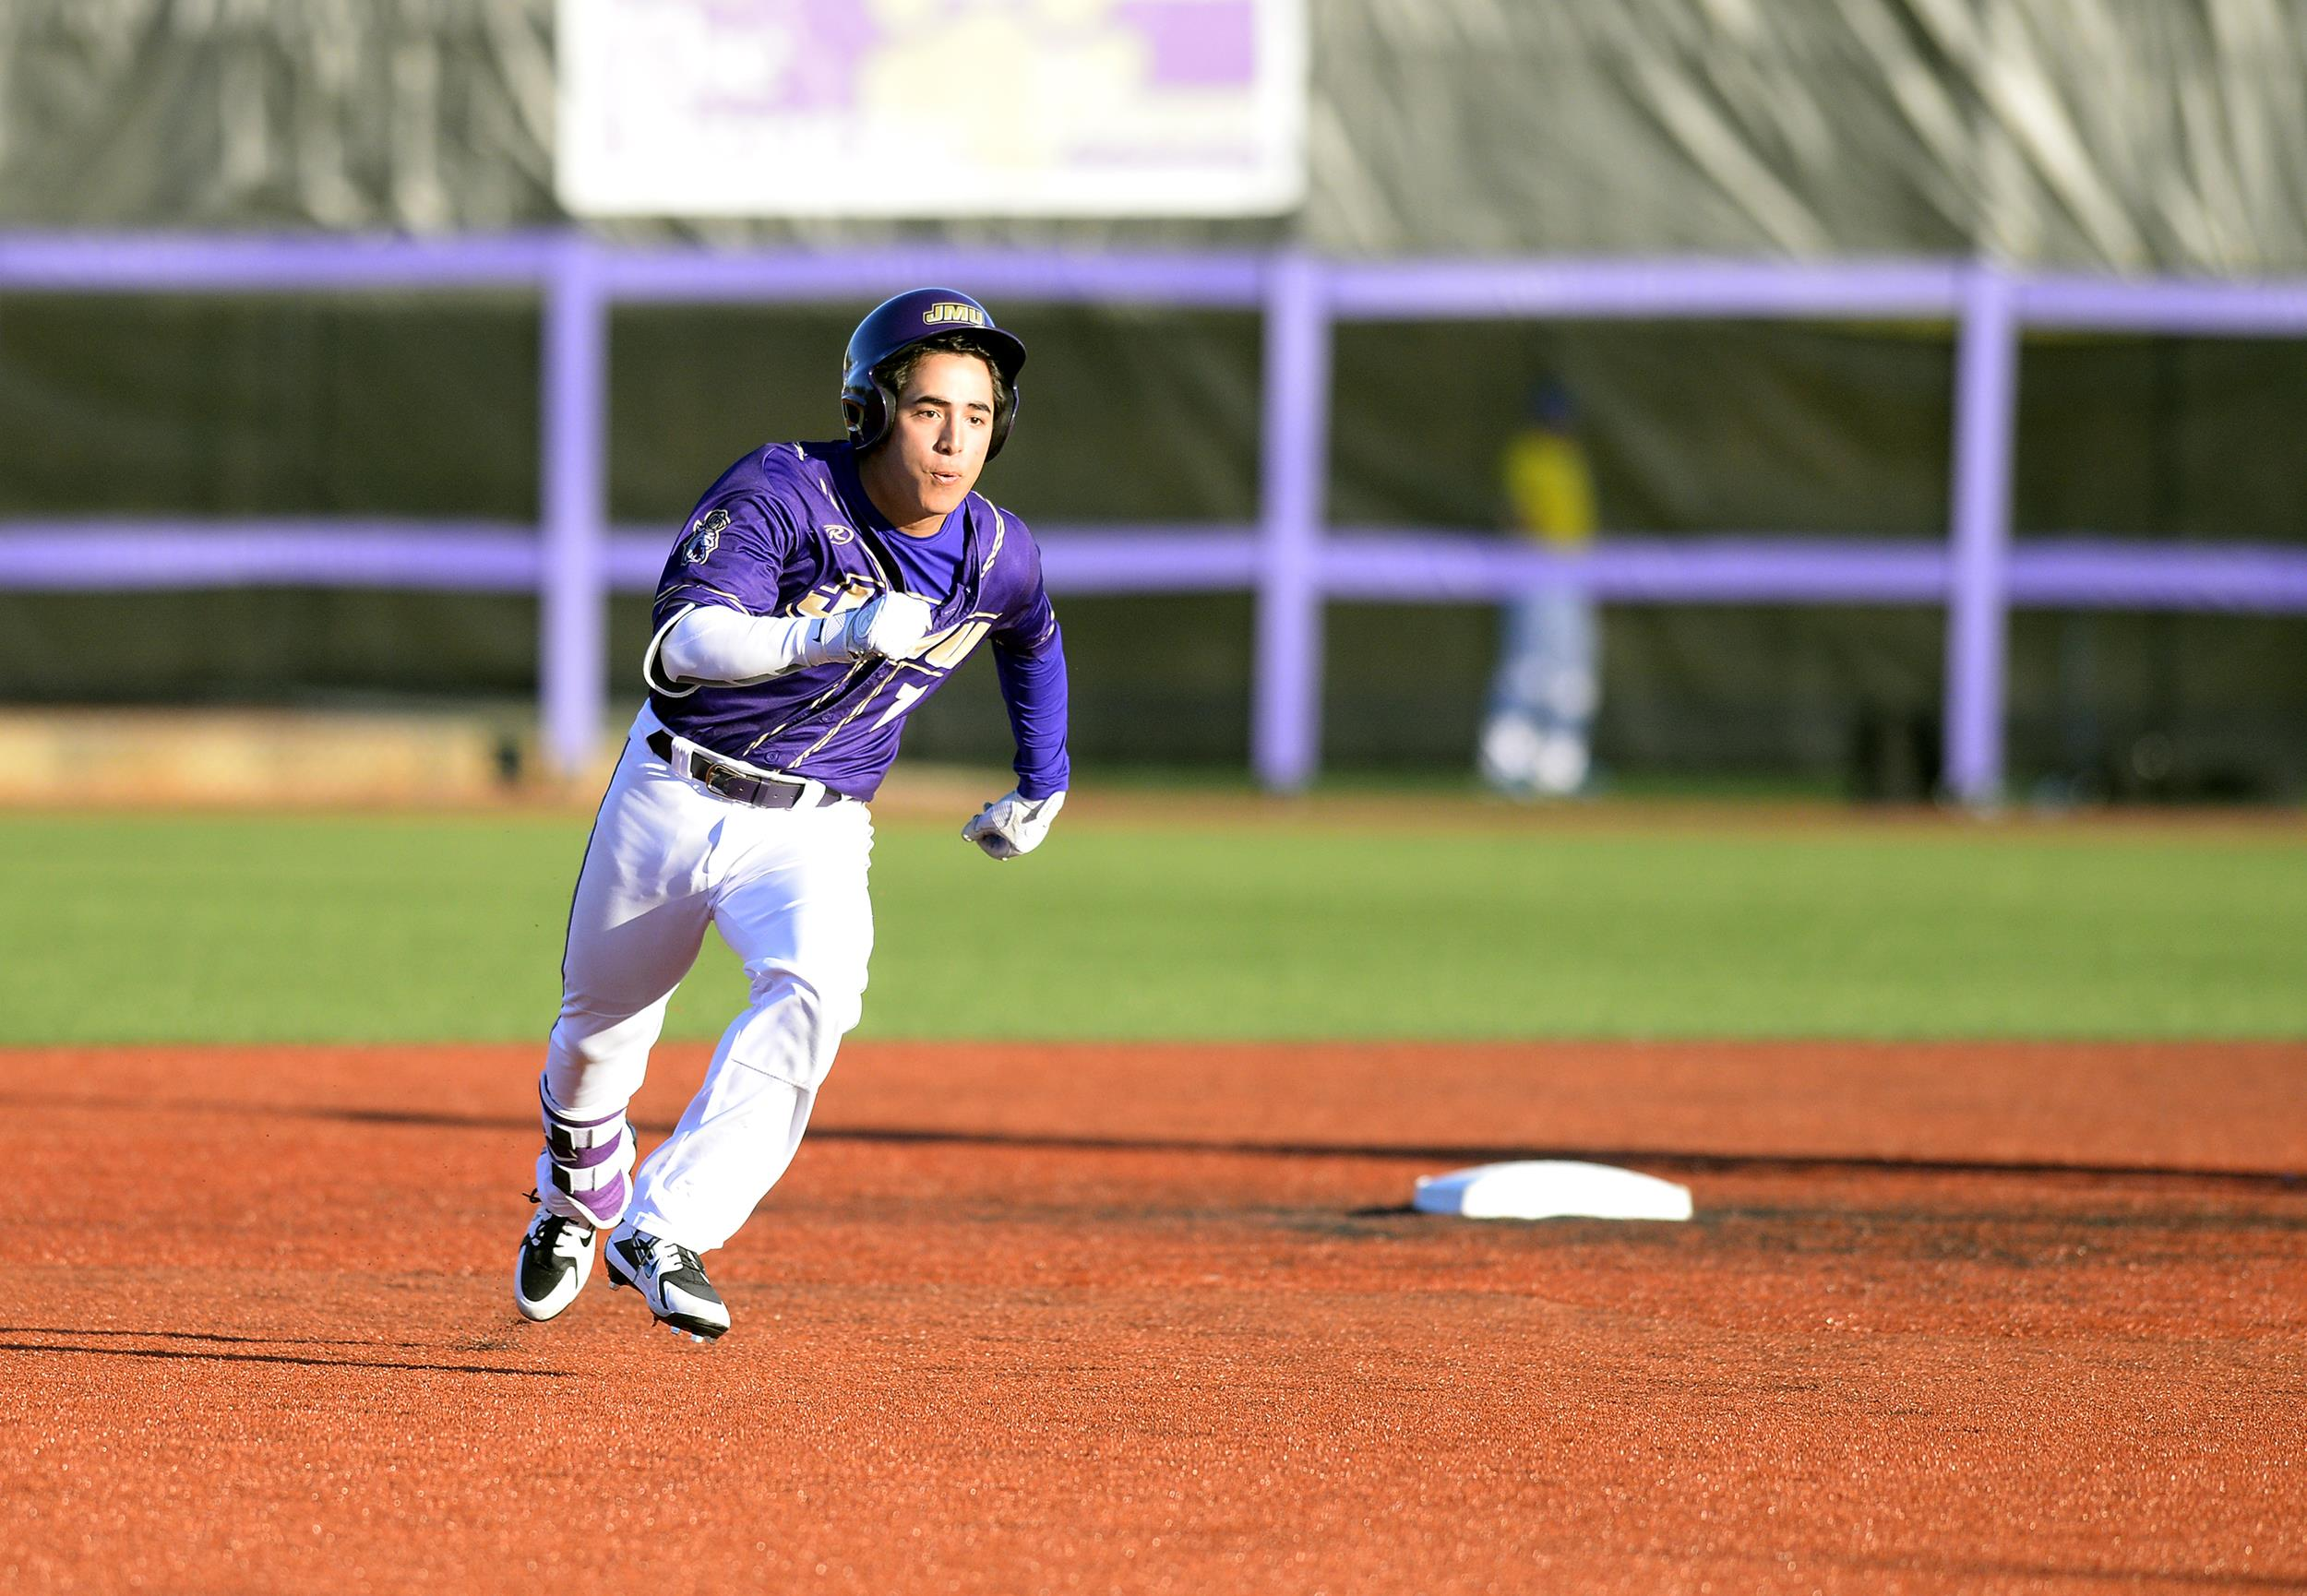 Baseball: Stewart Stays Hot, JMU Bats Come Alive in Win Saturday